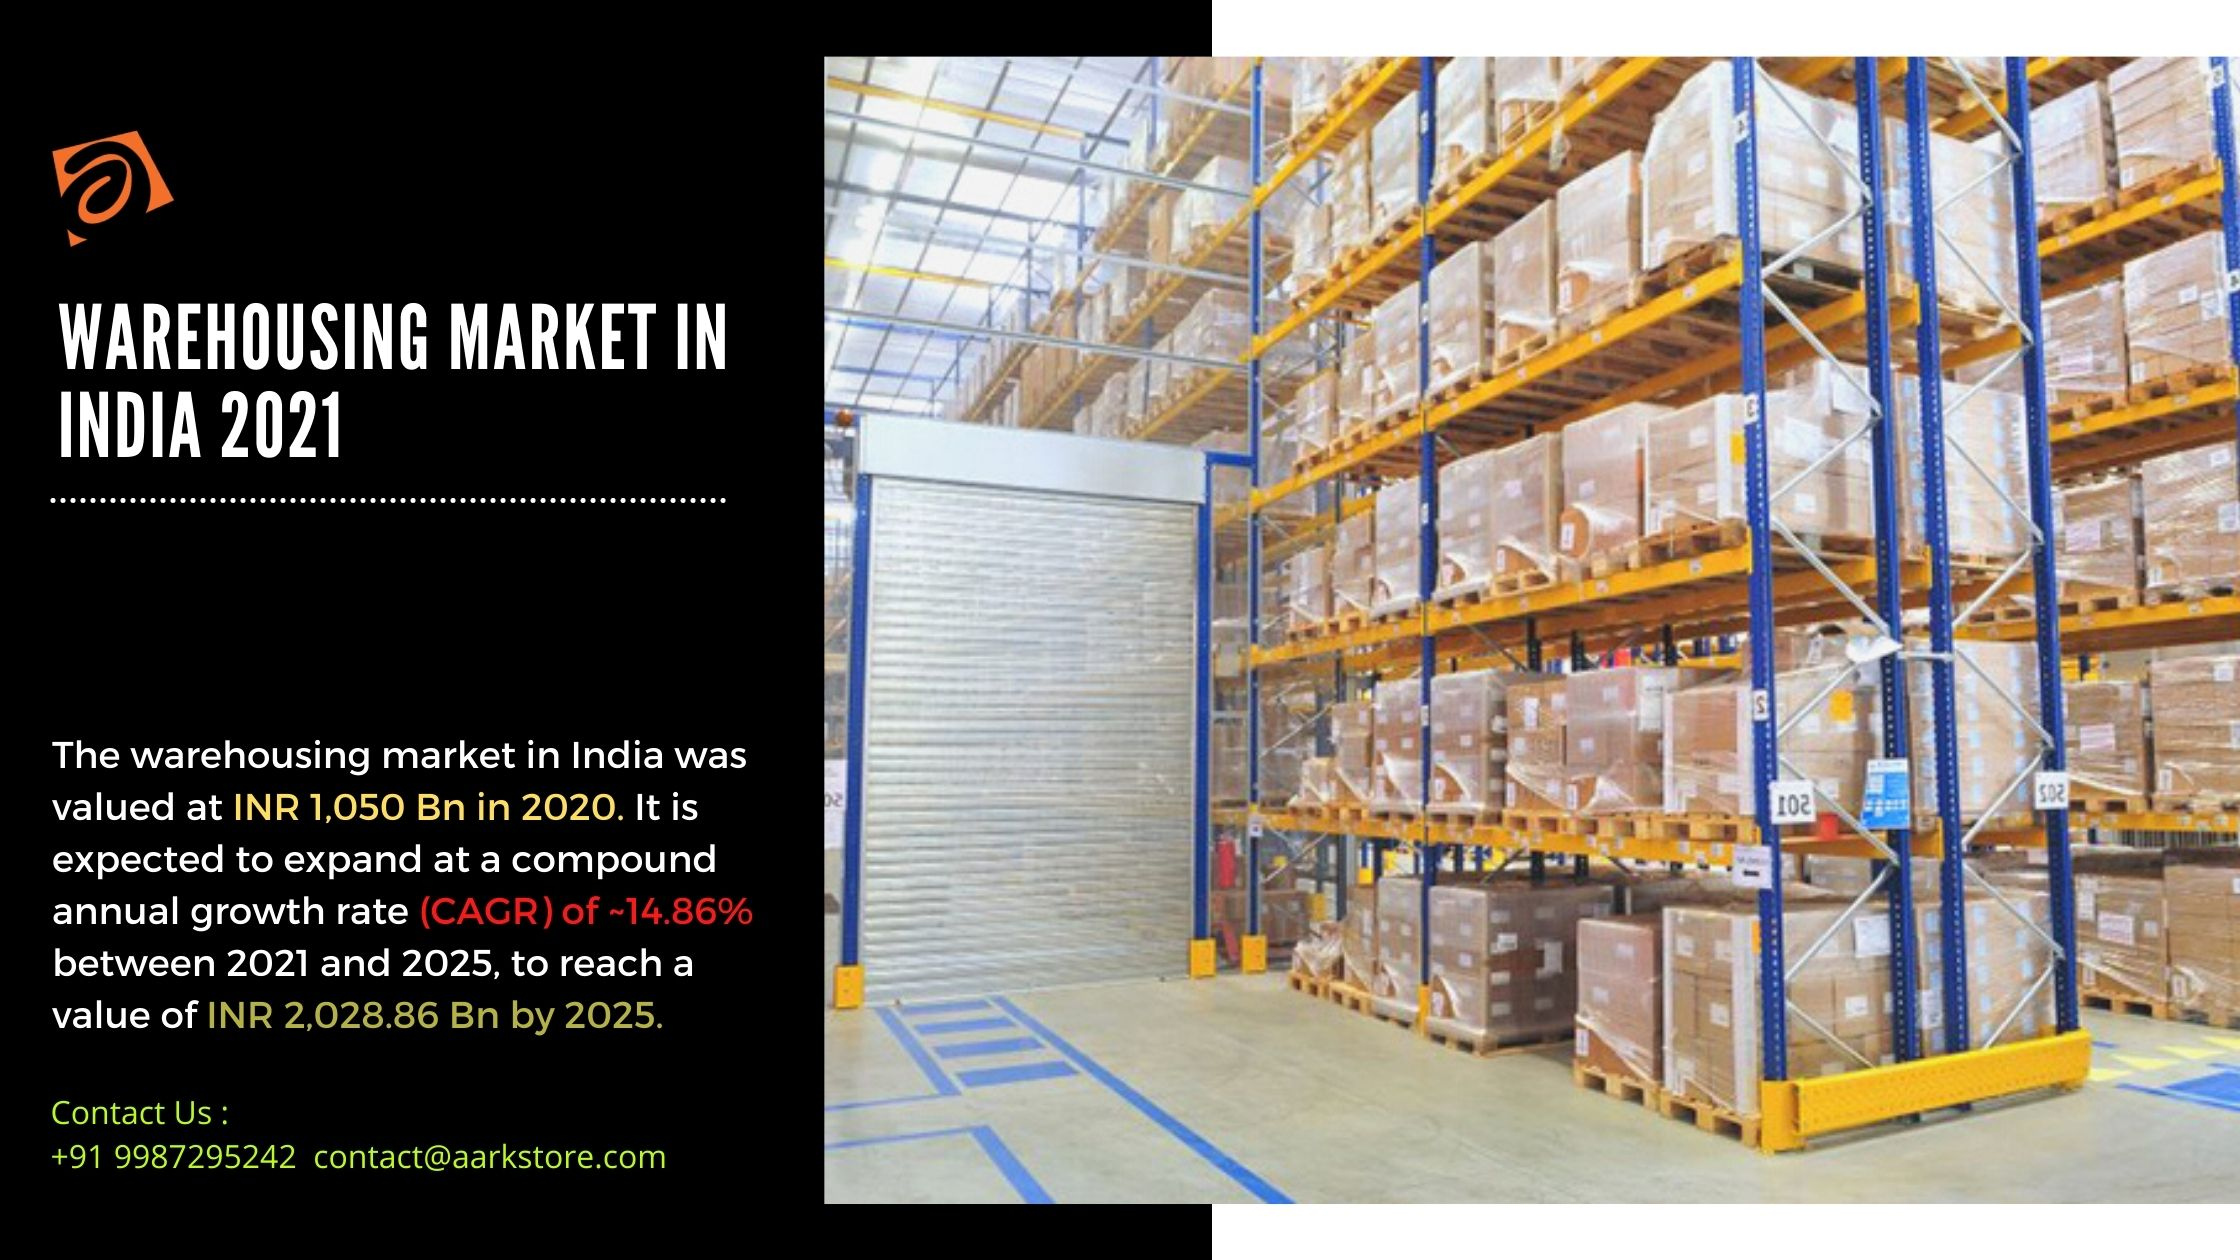 Warehousing Market growth In India 2021